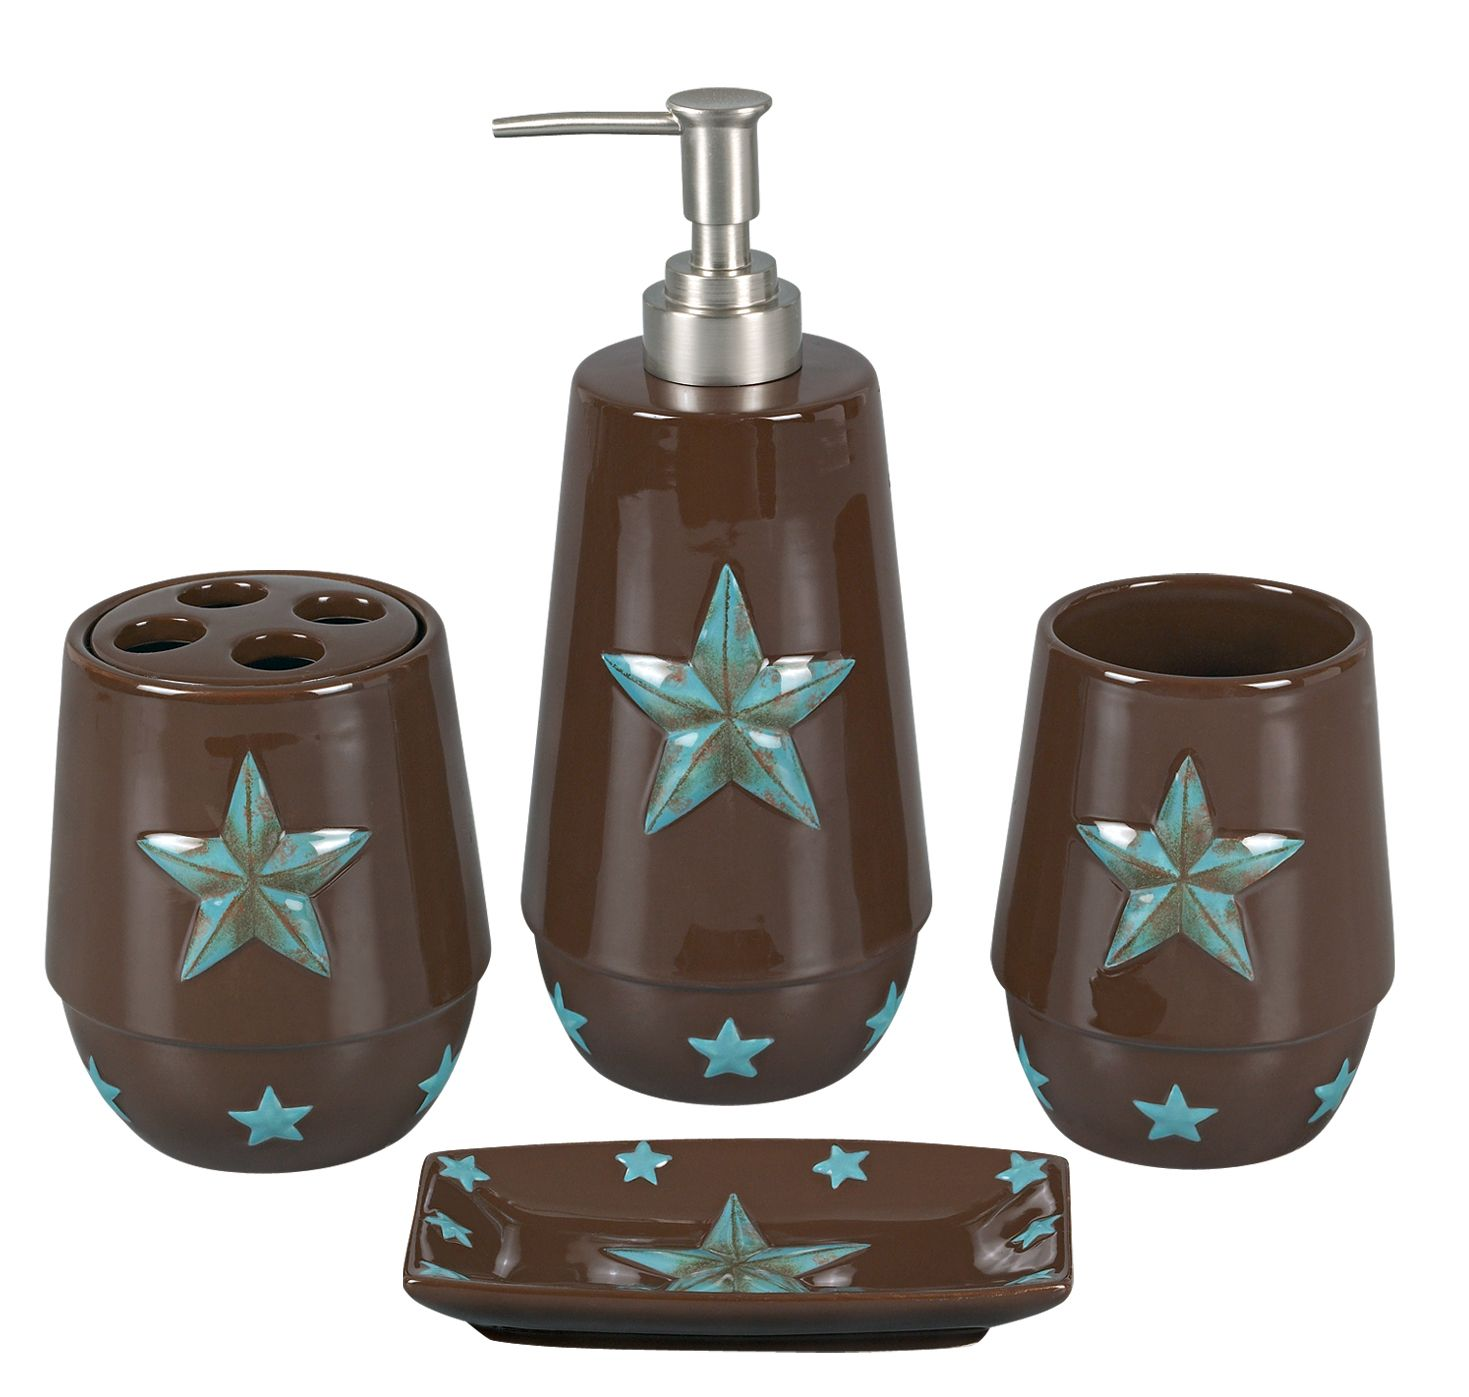 Cowboy bathroom decor - Our Bathroom Decor Sets Are Rustic Brown Ceramic With Turquoise Western Stars Lotion Pump